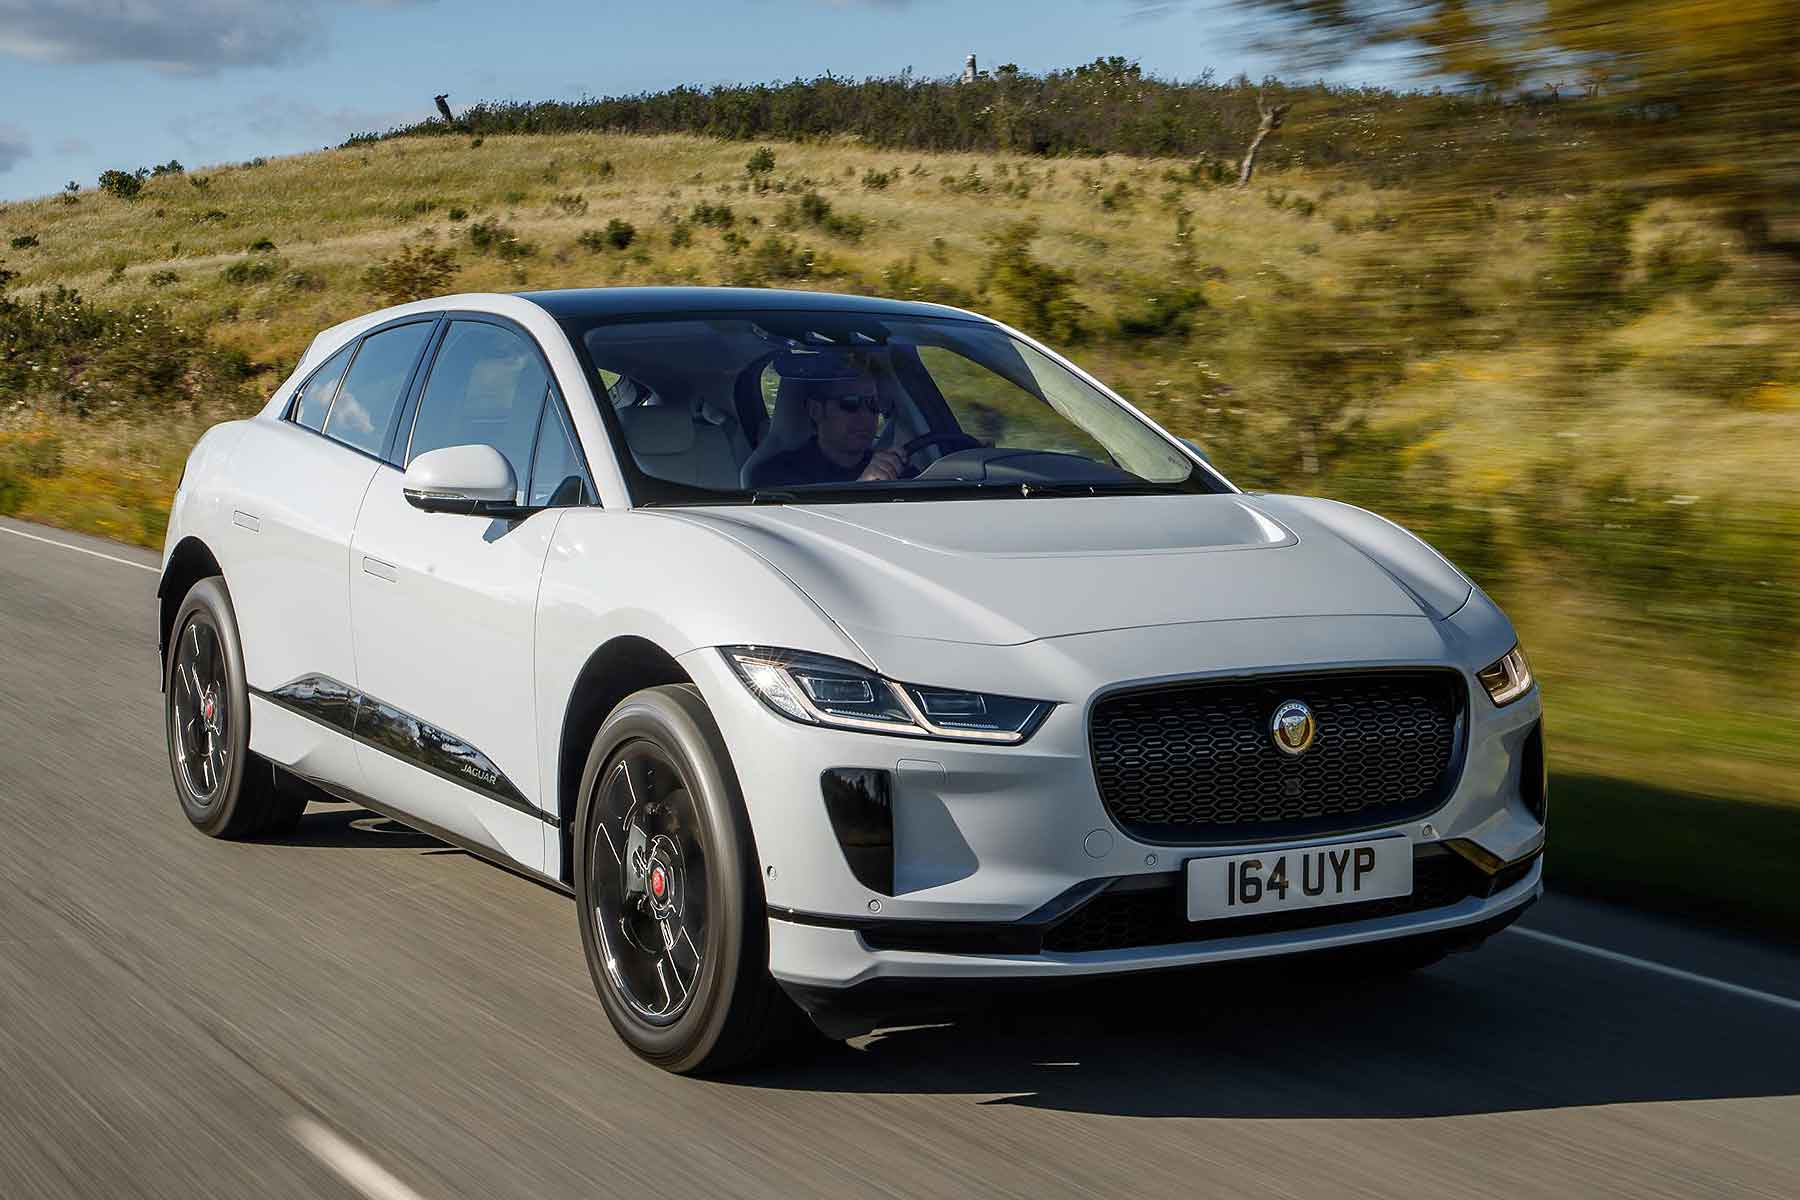 Jaguar Electric Car Price In India